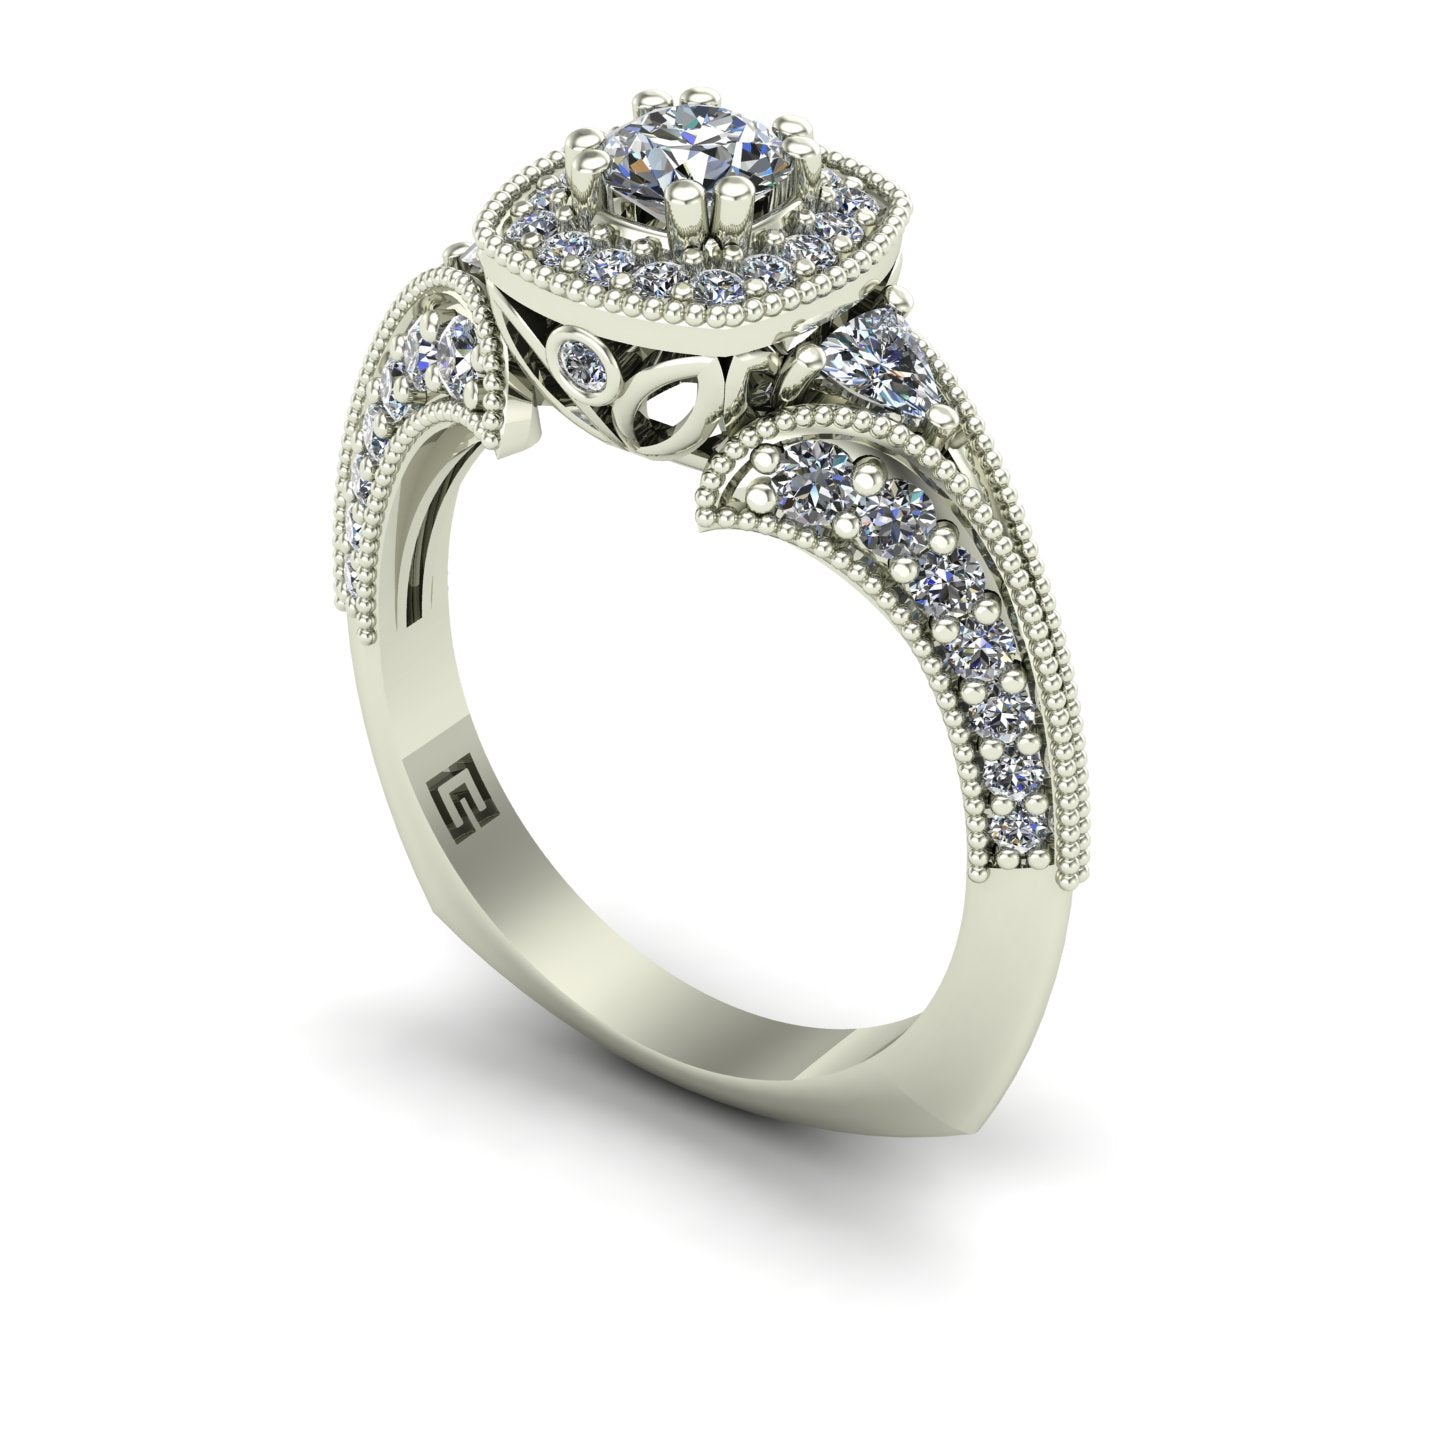 Diamond halo engagement ring with trillions and split shank in 14k white gold